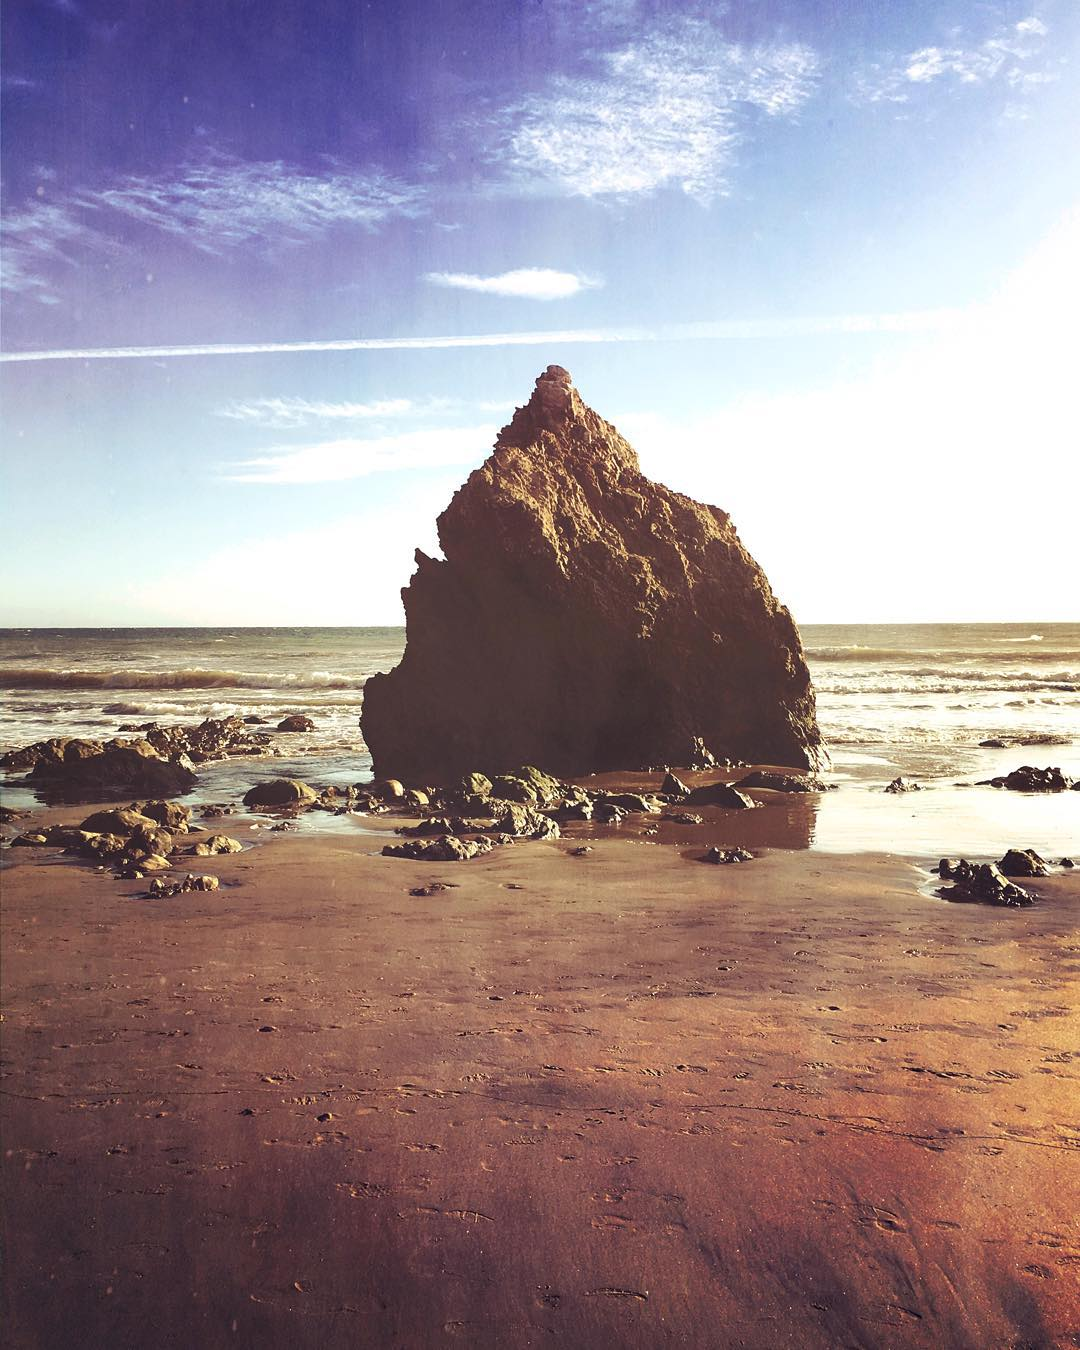 i-was-enjoying-some-creative-grimy-time-editing-this-rock-malibu-is-full-of-fun-ya-beach-ocean-elmatadorbeach-on-the-way-home-from-vacation-permanent-wanderlust-359365_23428427504_o.jpg